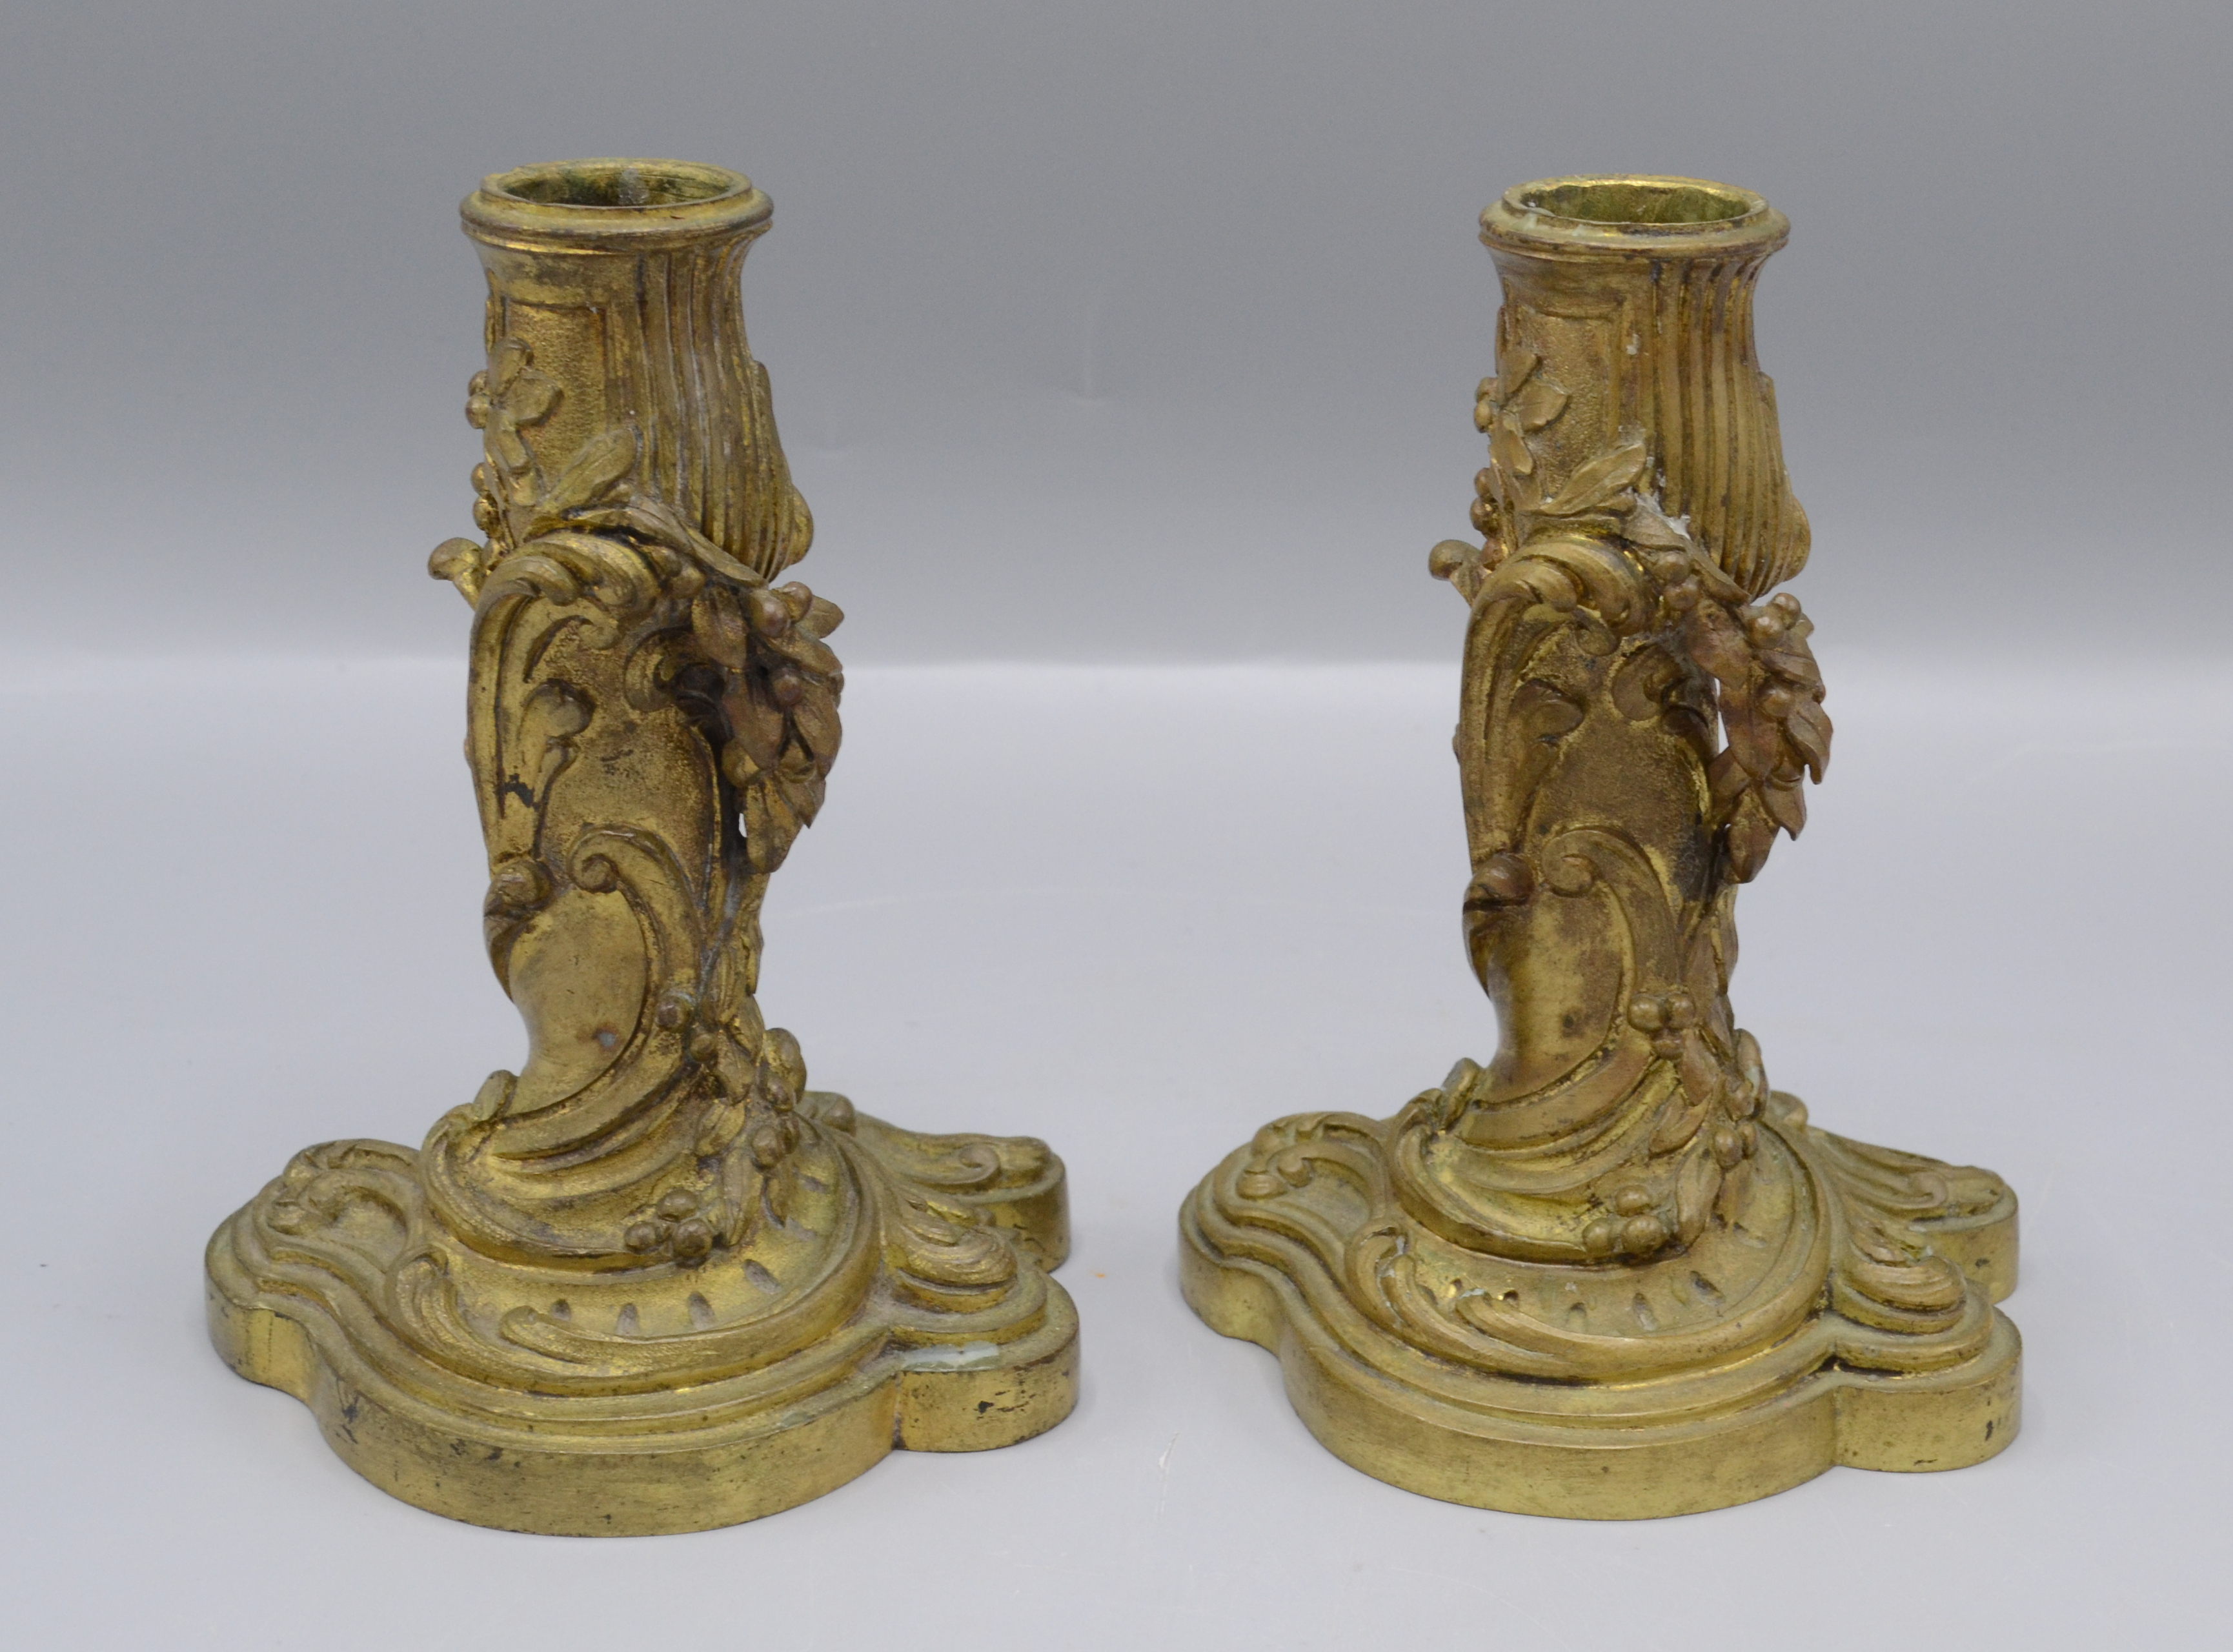 Lot 47 - A pair of continental gilt metal candlesticks, the body decorated with leaves and floral swags,